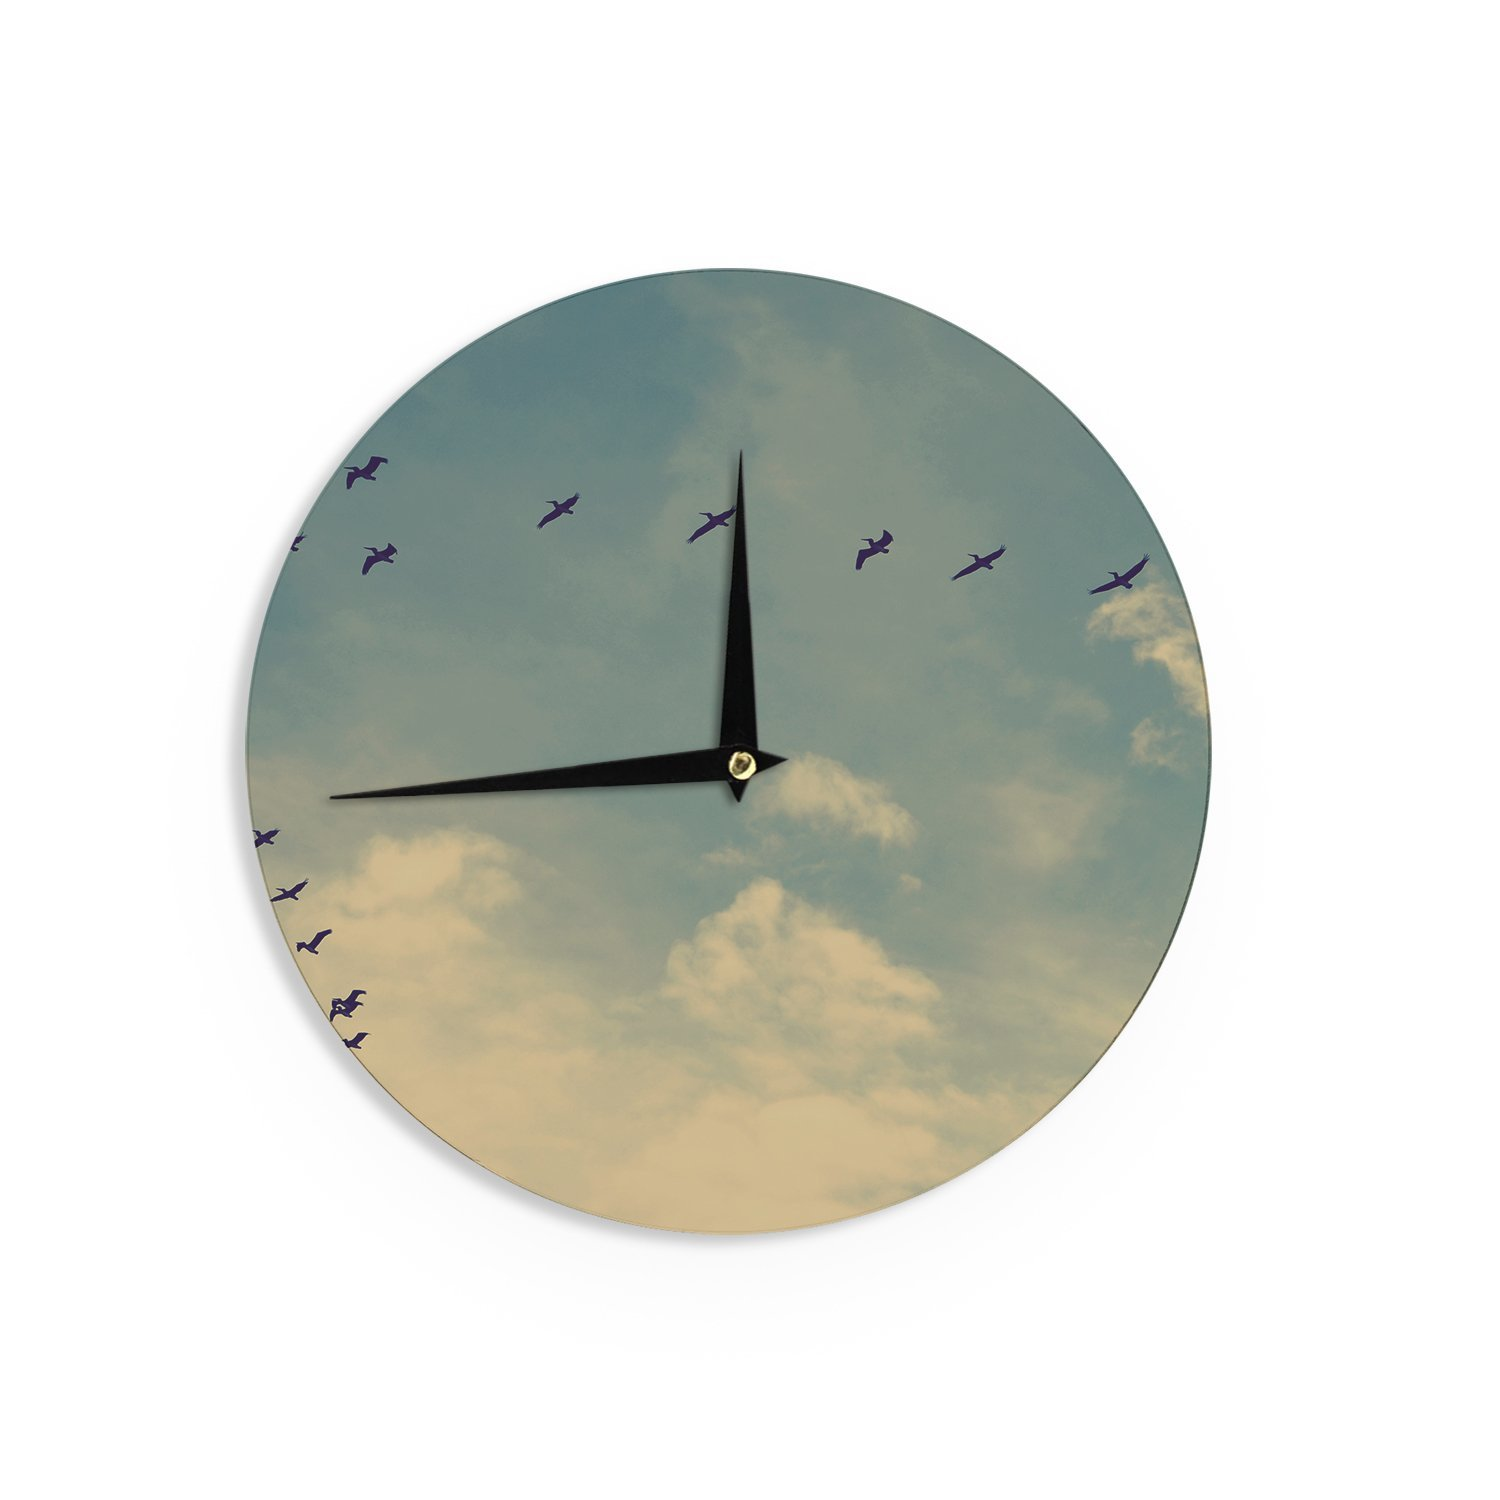 Kess InHouse Robin Dickinson Pterodactyls Blue Tan Wall Clock 12-Inch